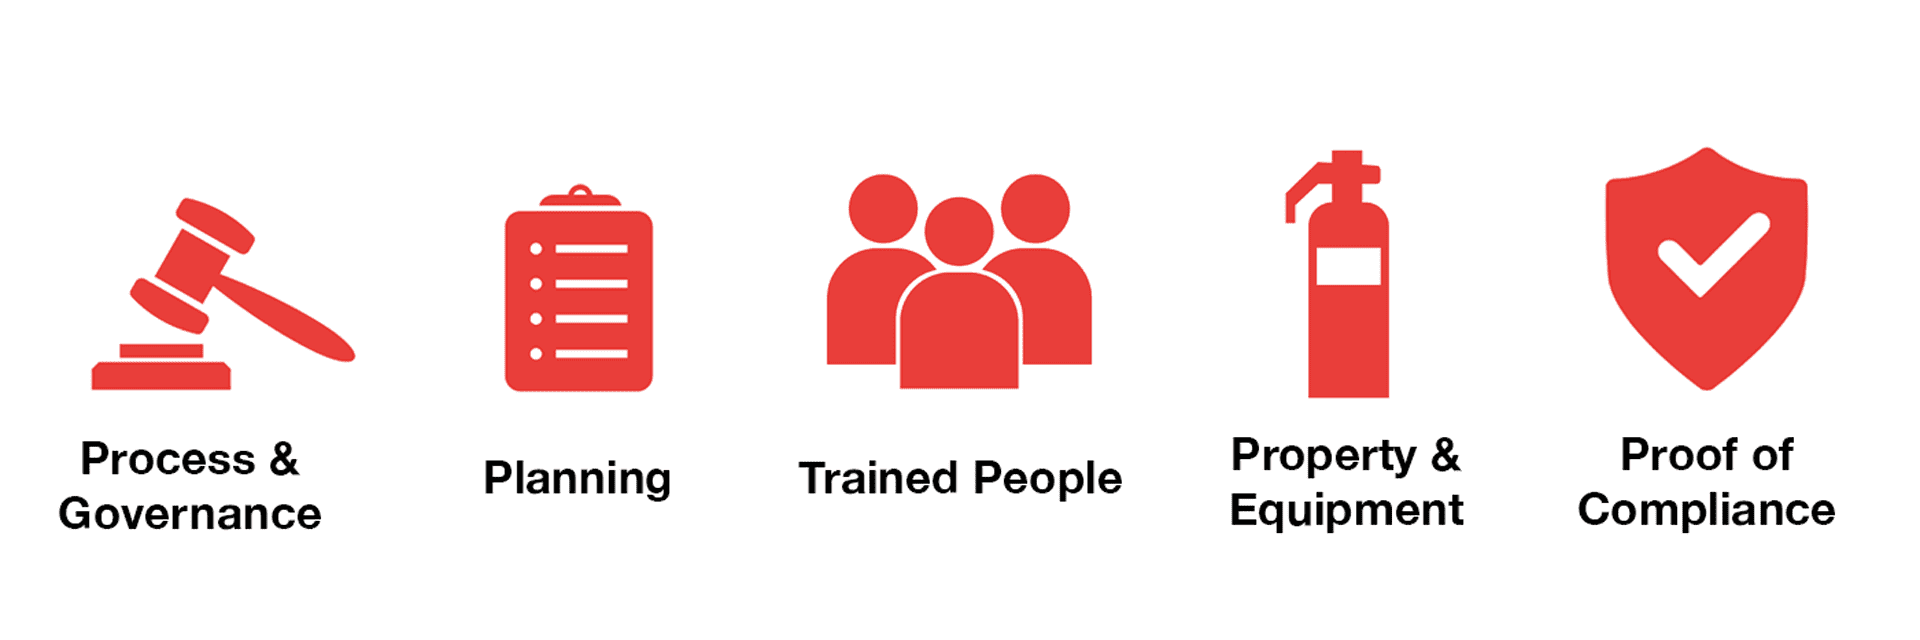 5Ps of compliance: Process & Governance; Planning; Trained People; Property & Equipment; Proof of Compliance.